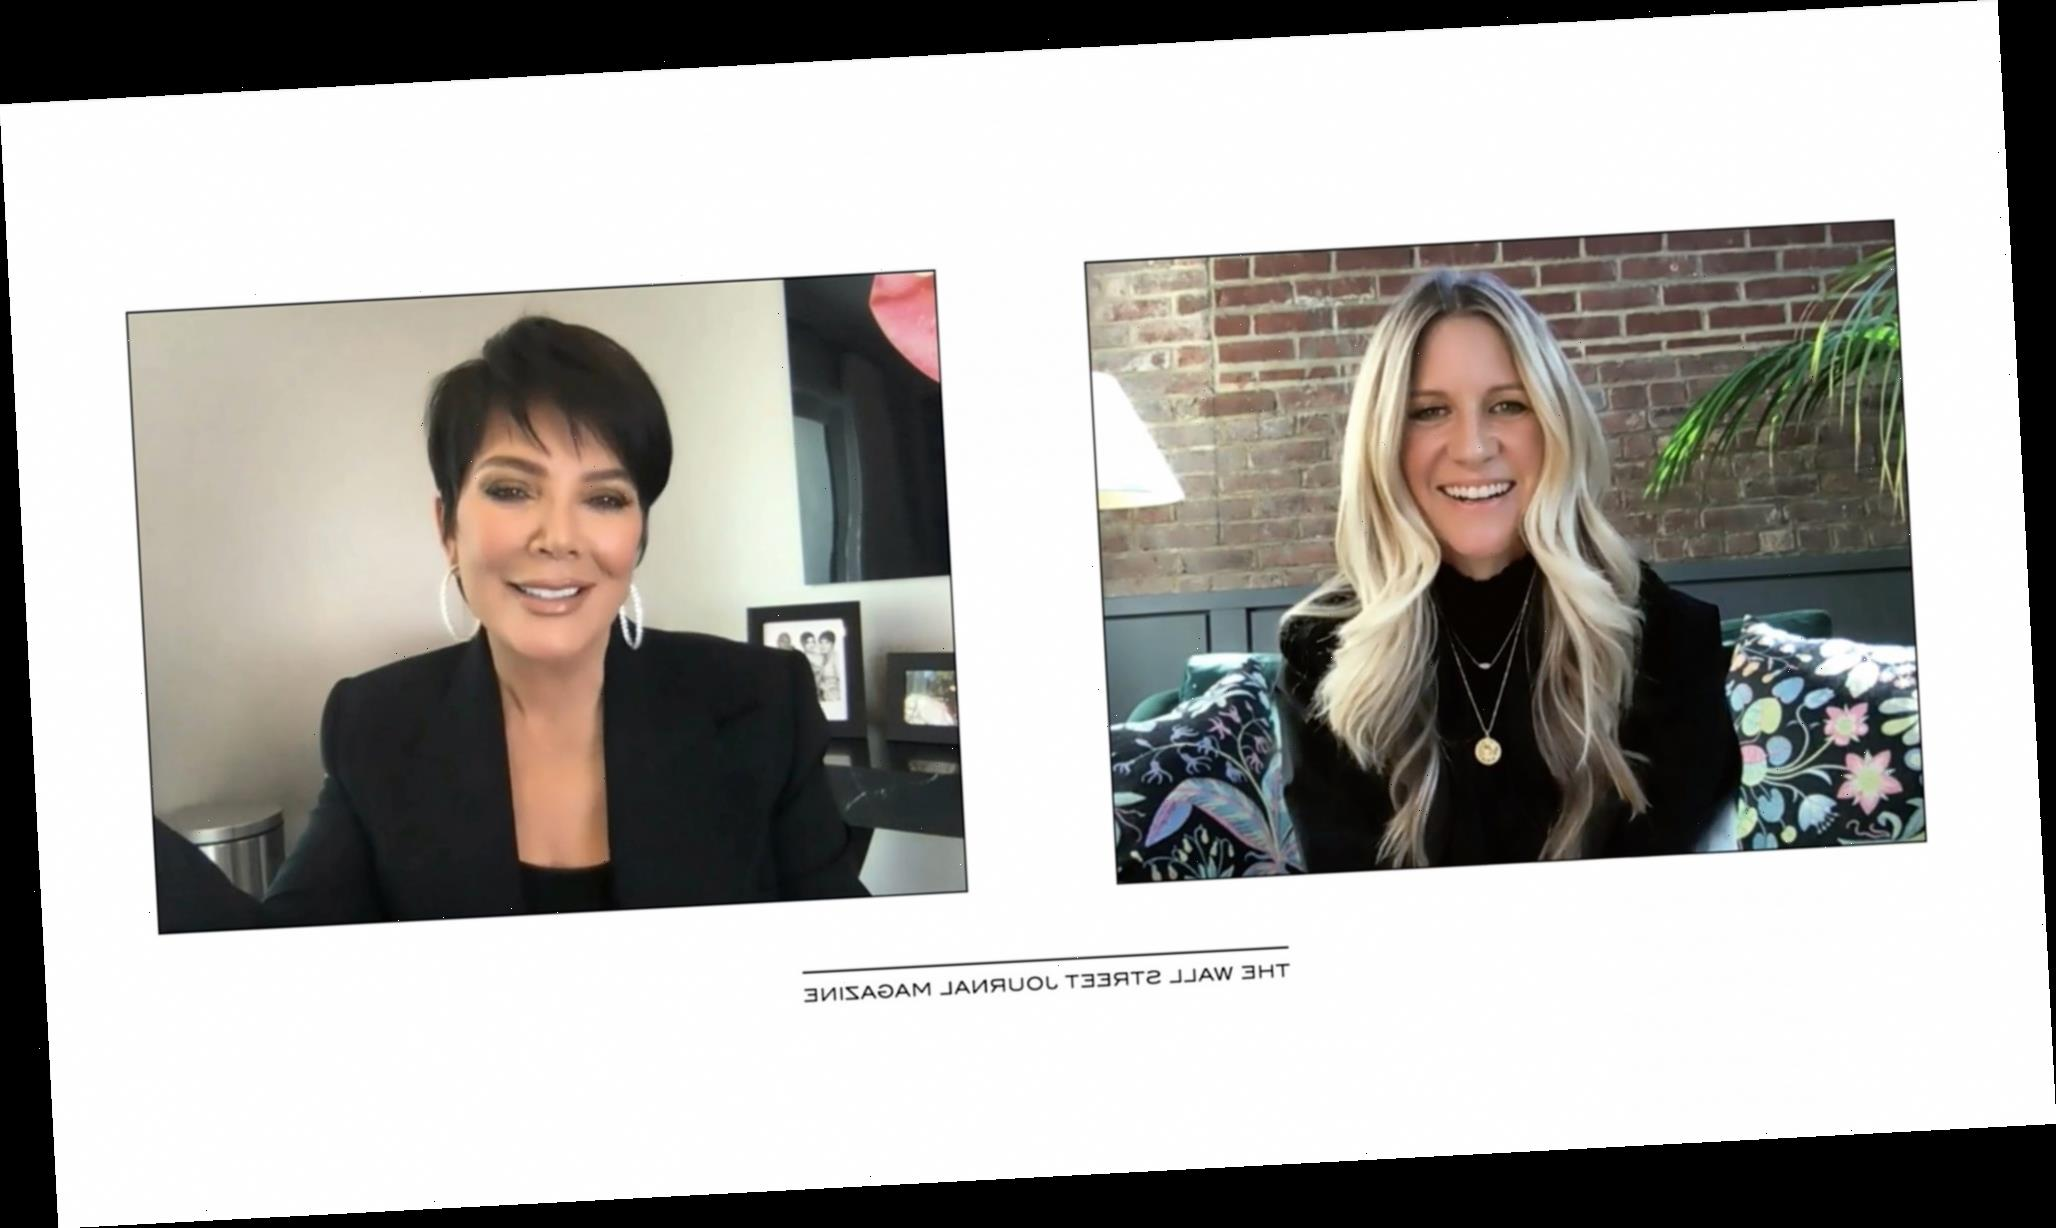 Kris Jenner Says Daughter Kourtney Kardashian Has Tried to Fire Her as Her Manager '3 or 4 Times'